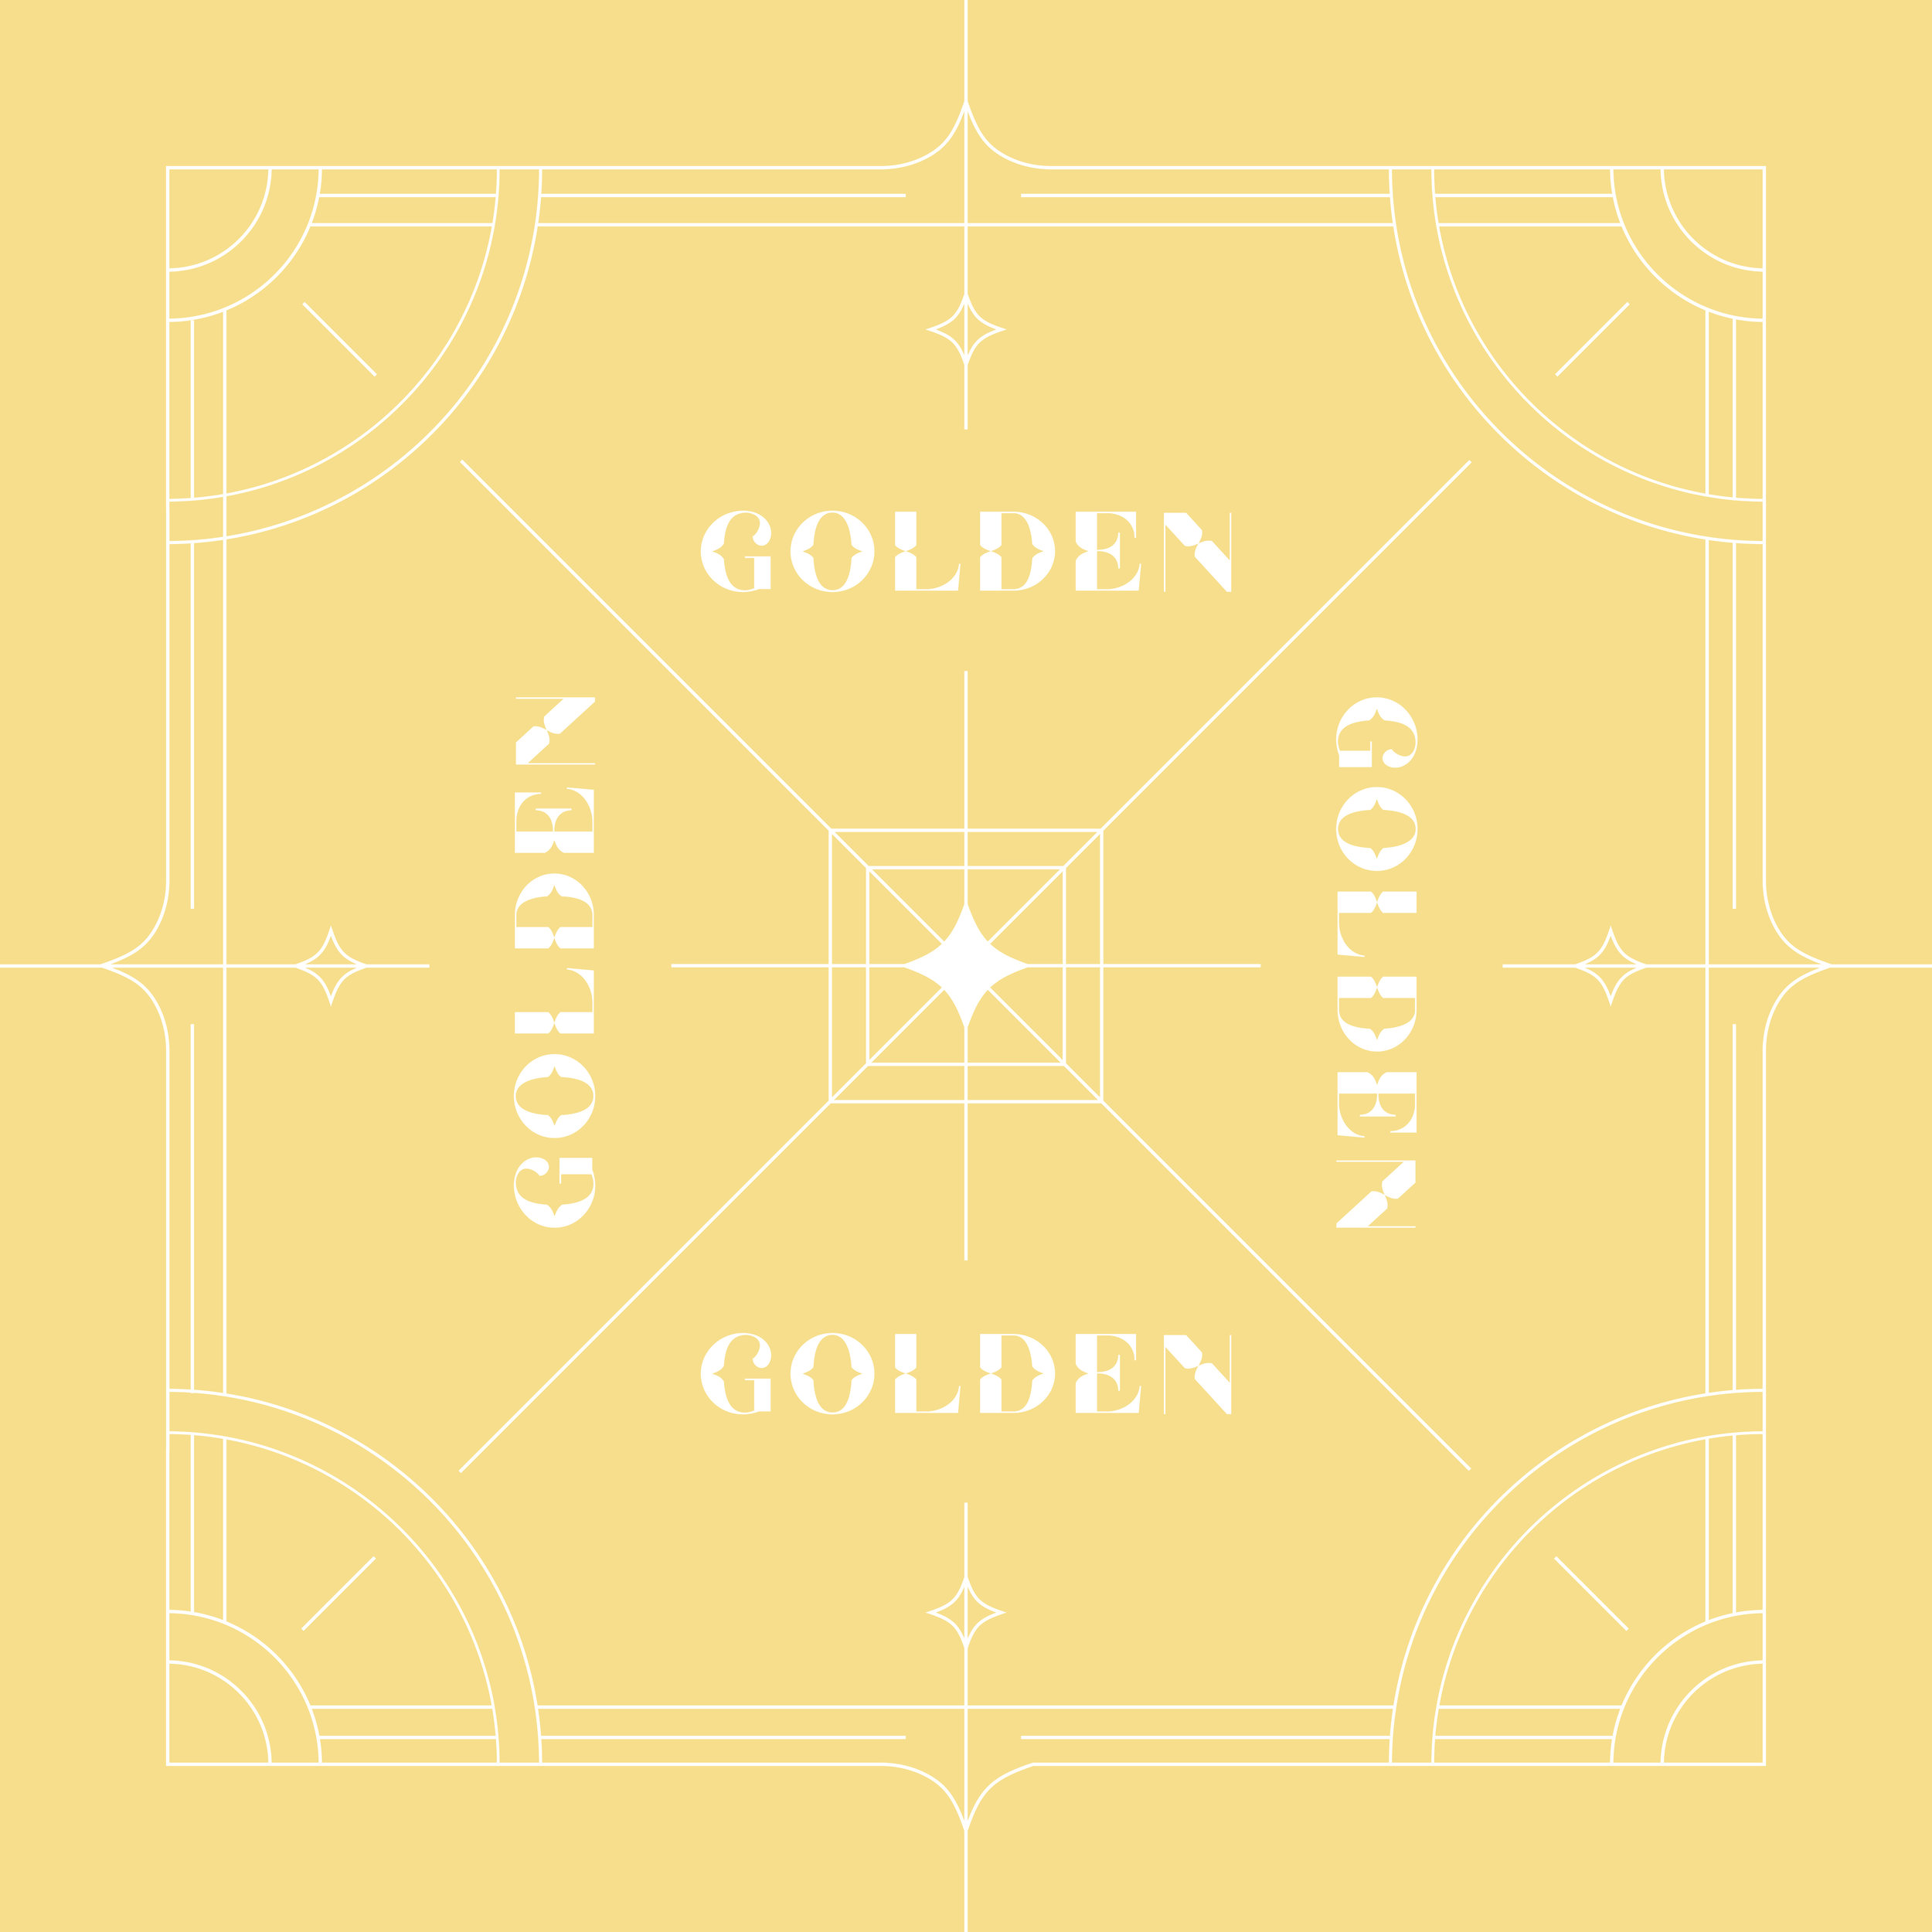 Clarity-Candle-Playlist-Cover-Design-01-Golden.jpg